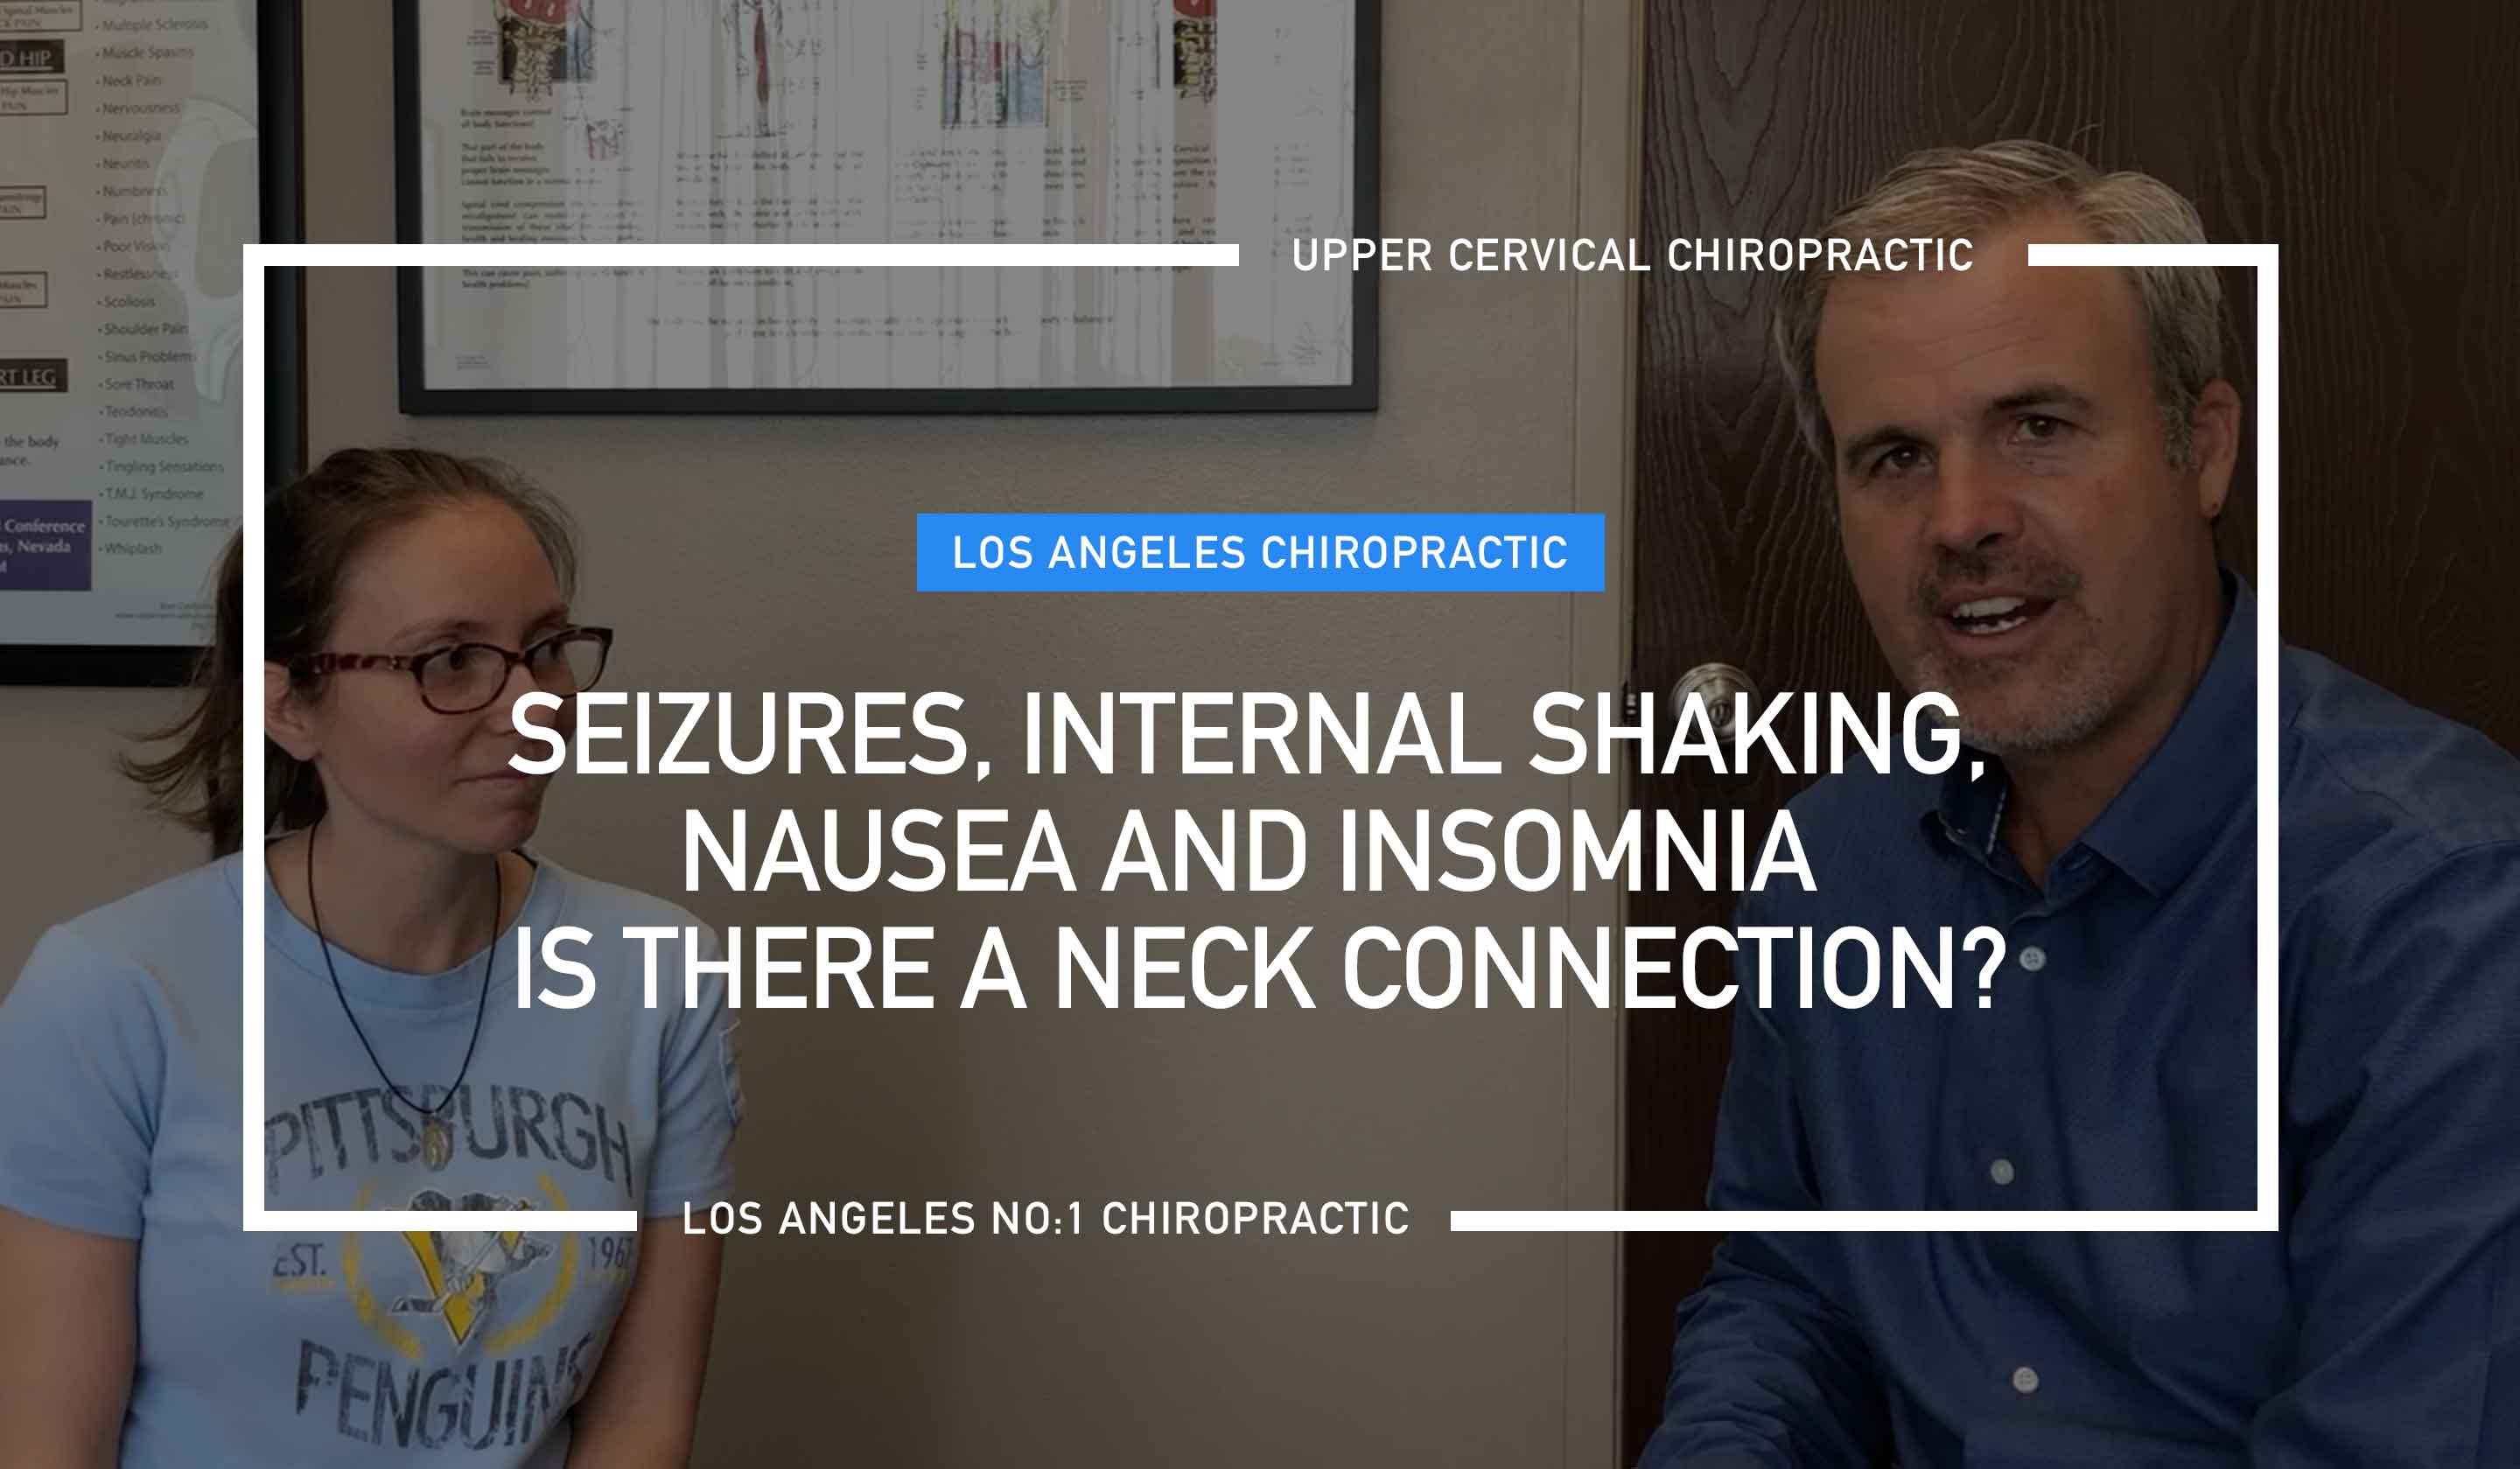 Seizures, Nausea, Insomnia is there a Neck Connection